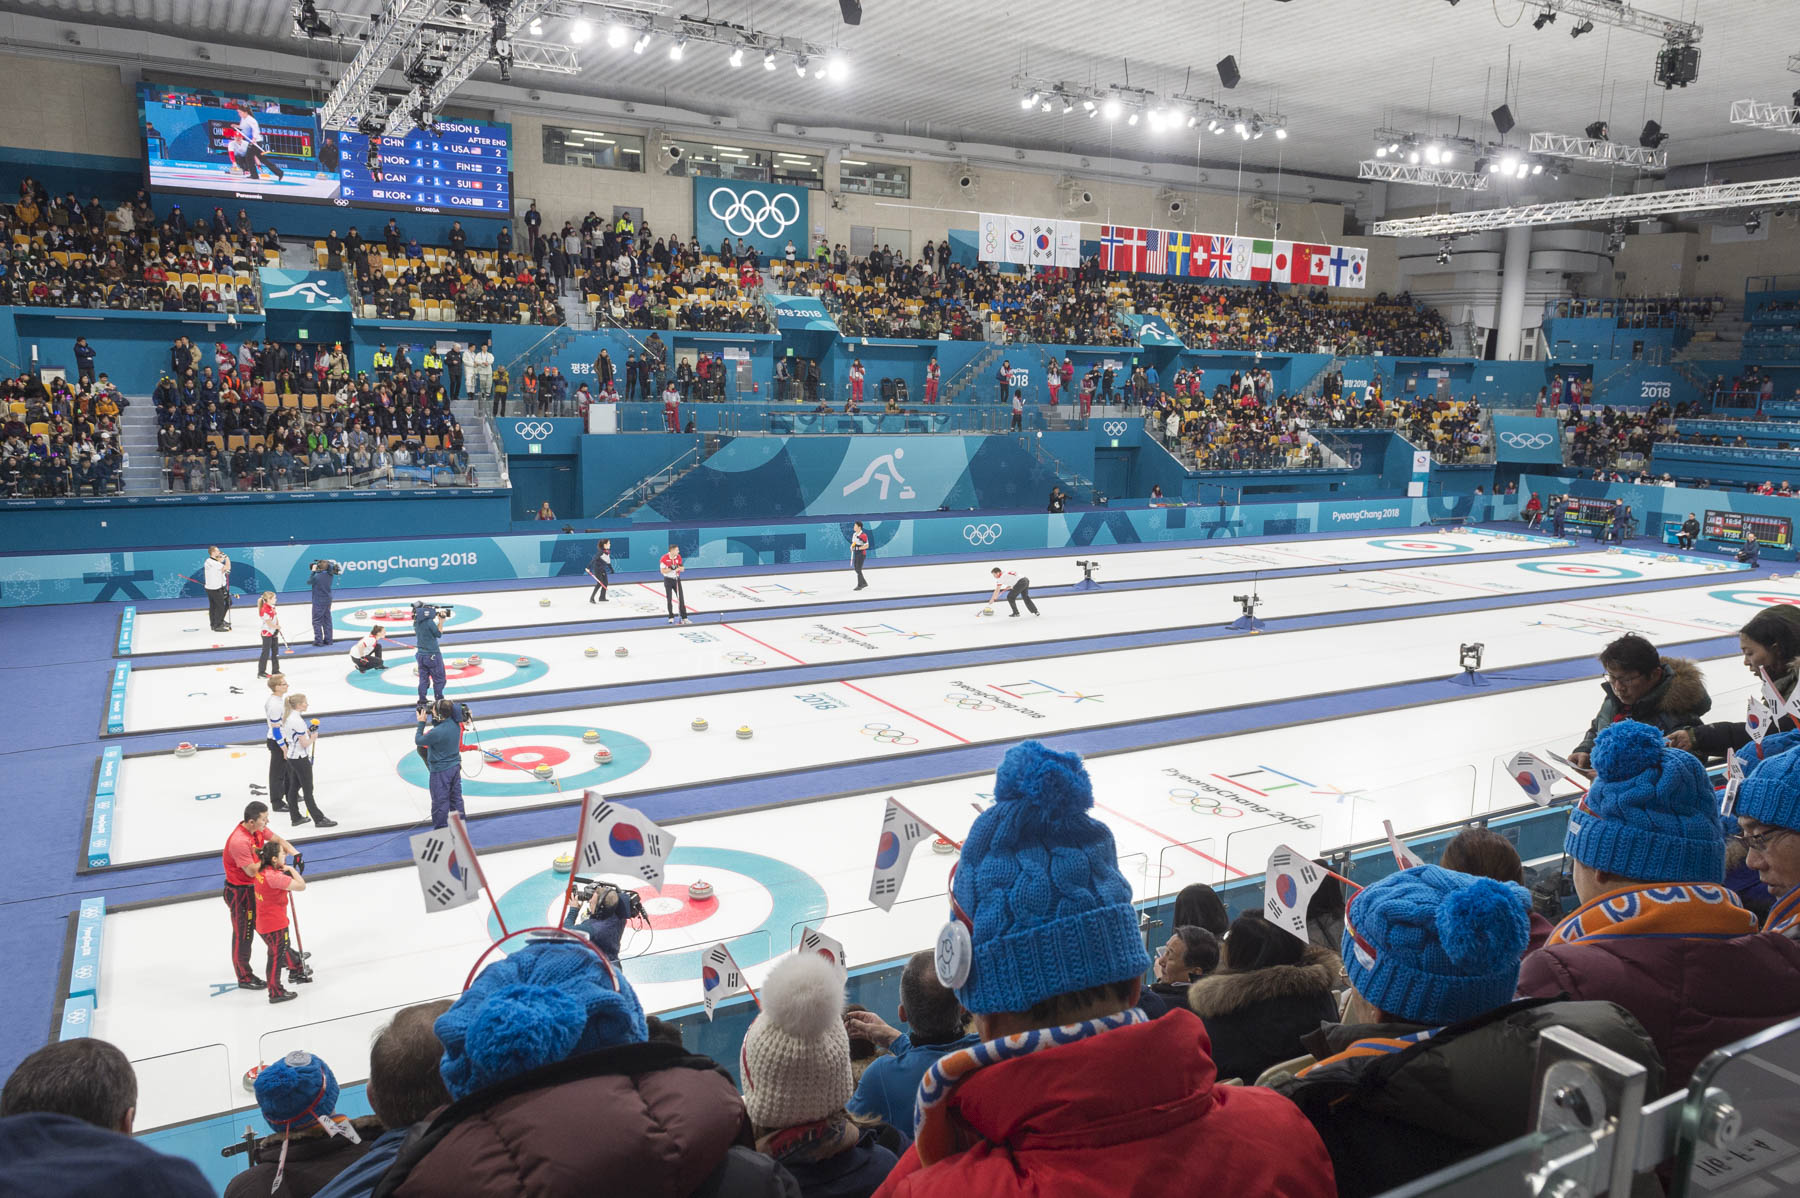 Her Excellency attended curling mixed doubles as Canada competed against Switzerland.